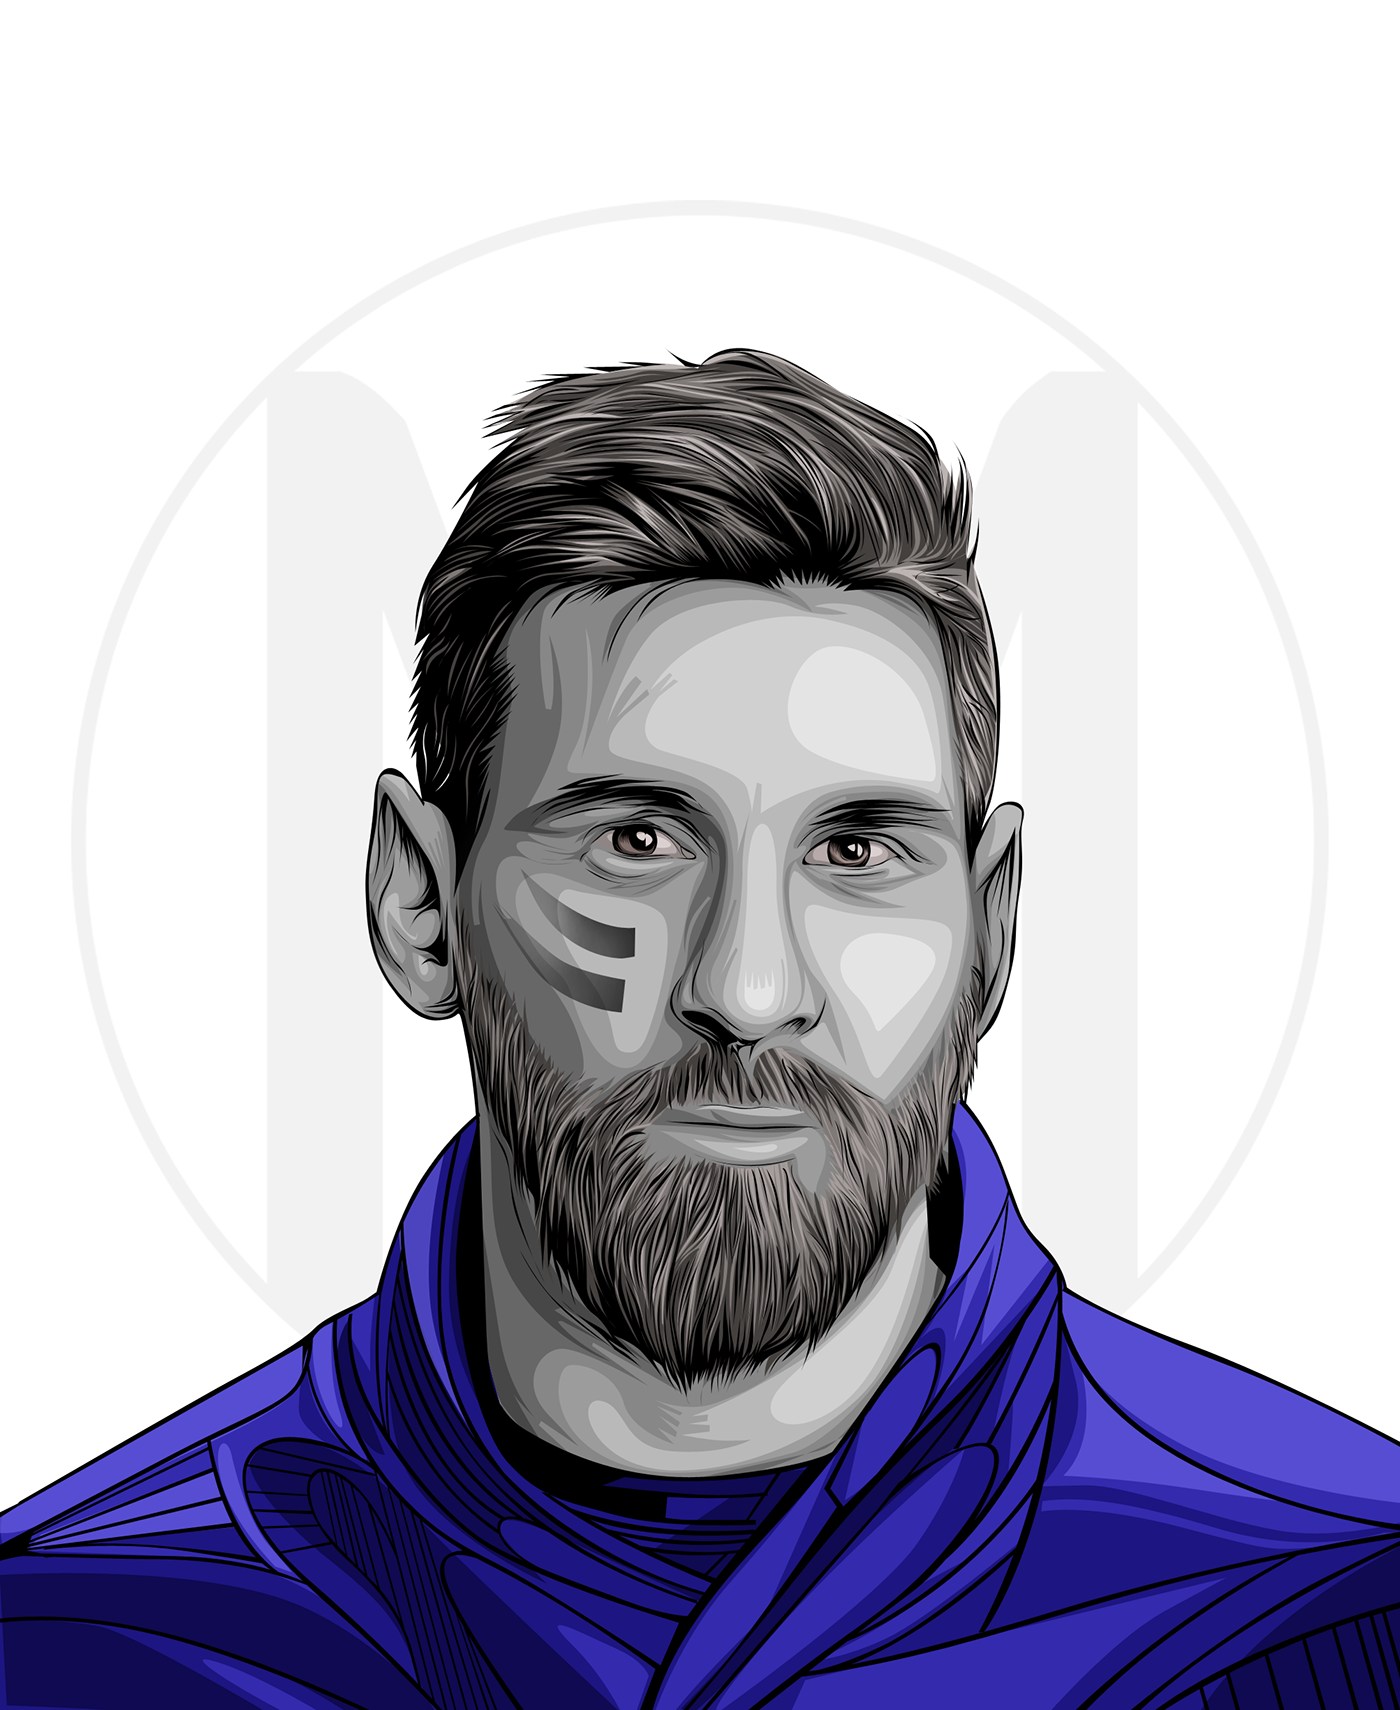 Drawing messi barcelona. On behance thank you